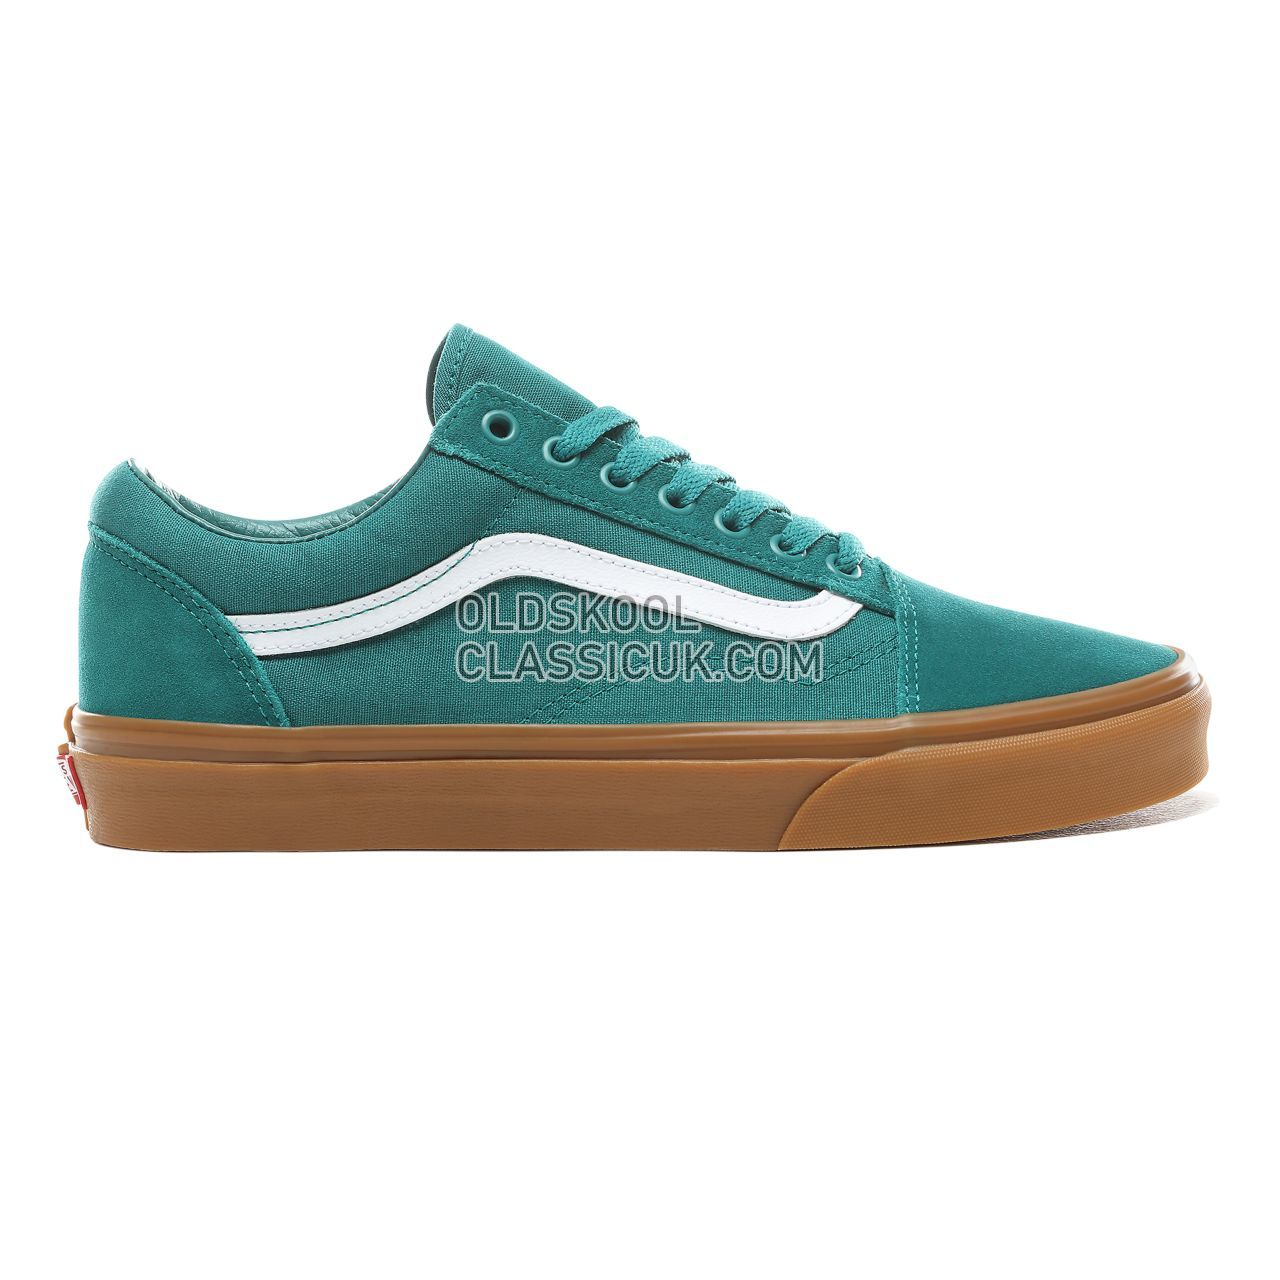 Vans Old Skool Sneakers Mens Womens Unisex Quetzal Green/Gum VN0A38G1VKU Shoes